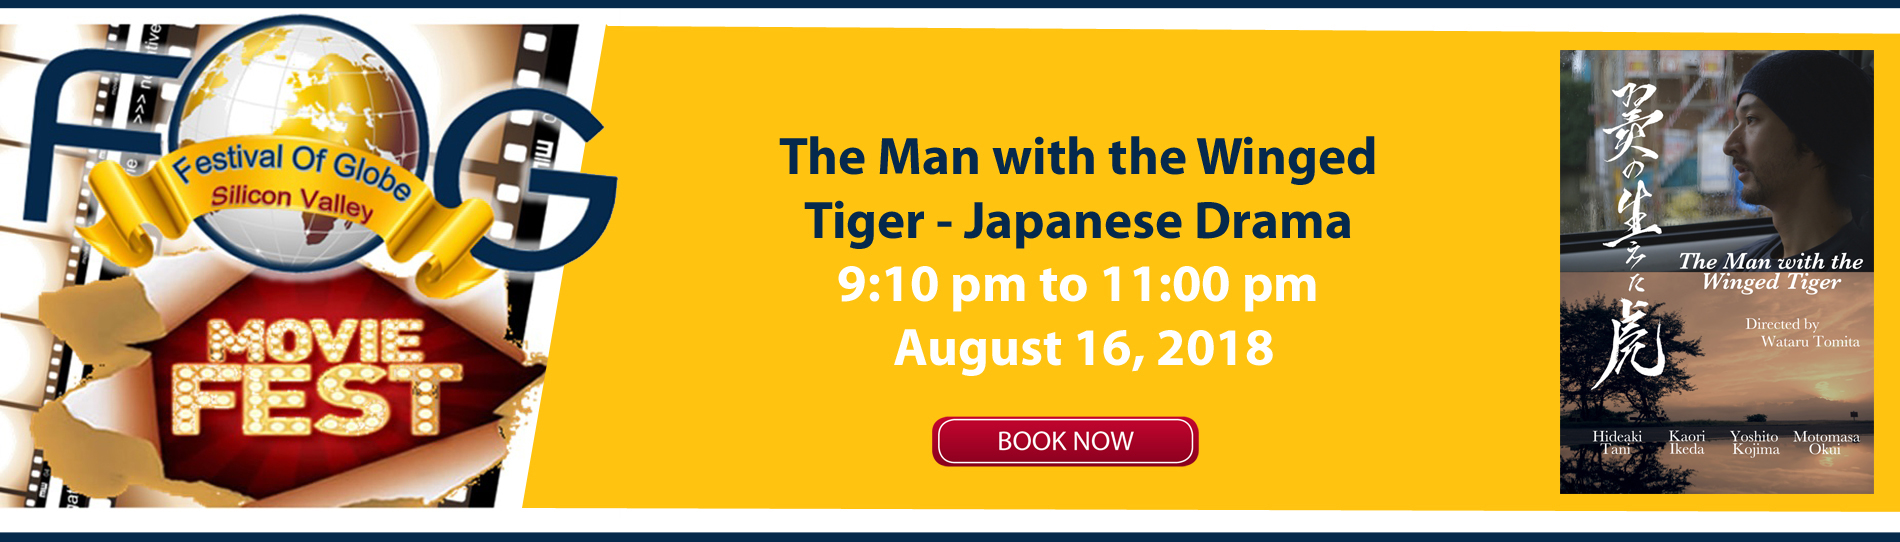 EventMozo The Man with the Winged Tiger - Japanese Drama